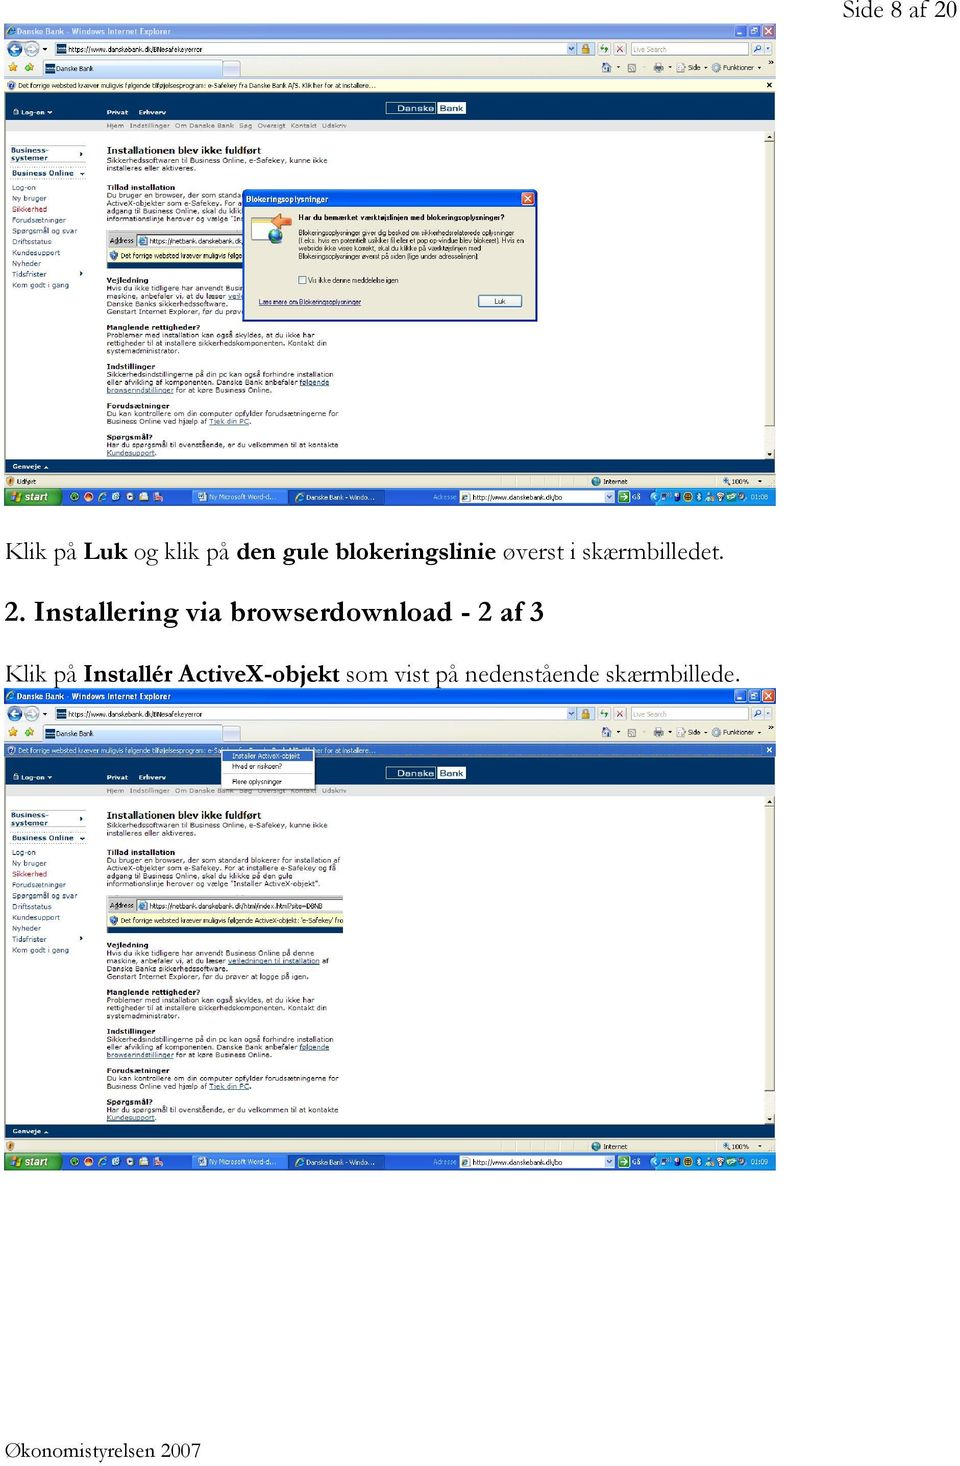 Installering via browserdownload - 2 af 3 Klik på